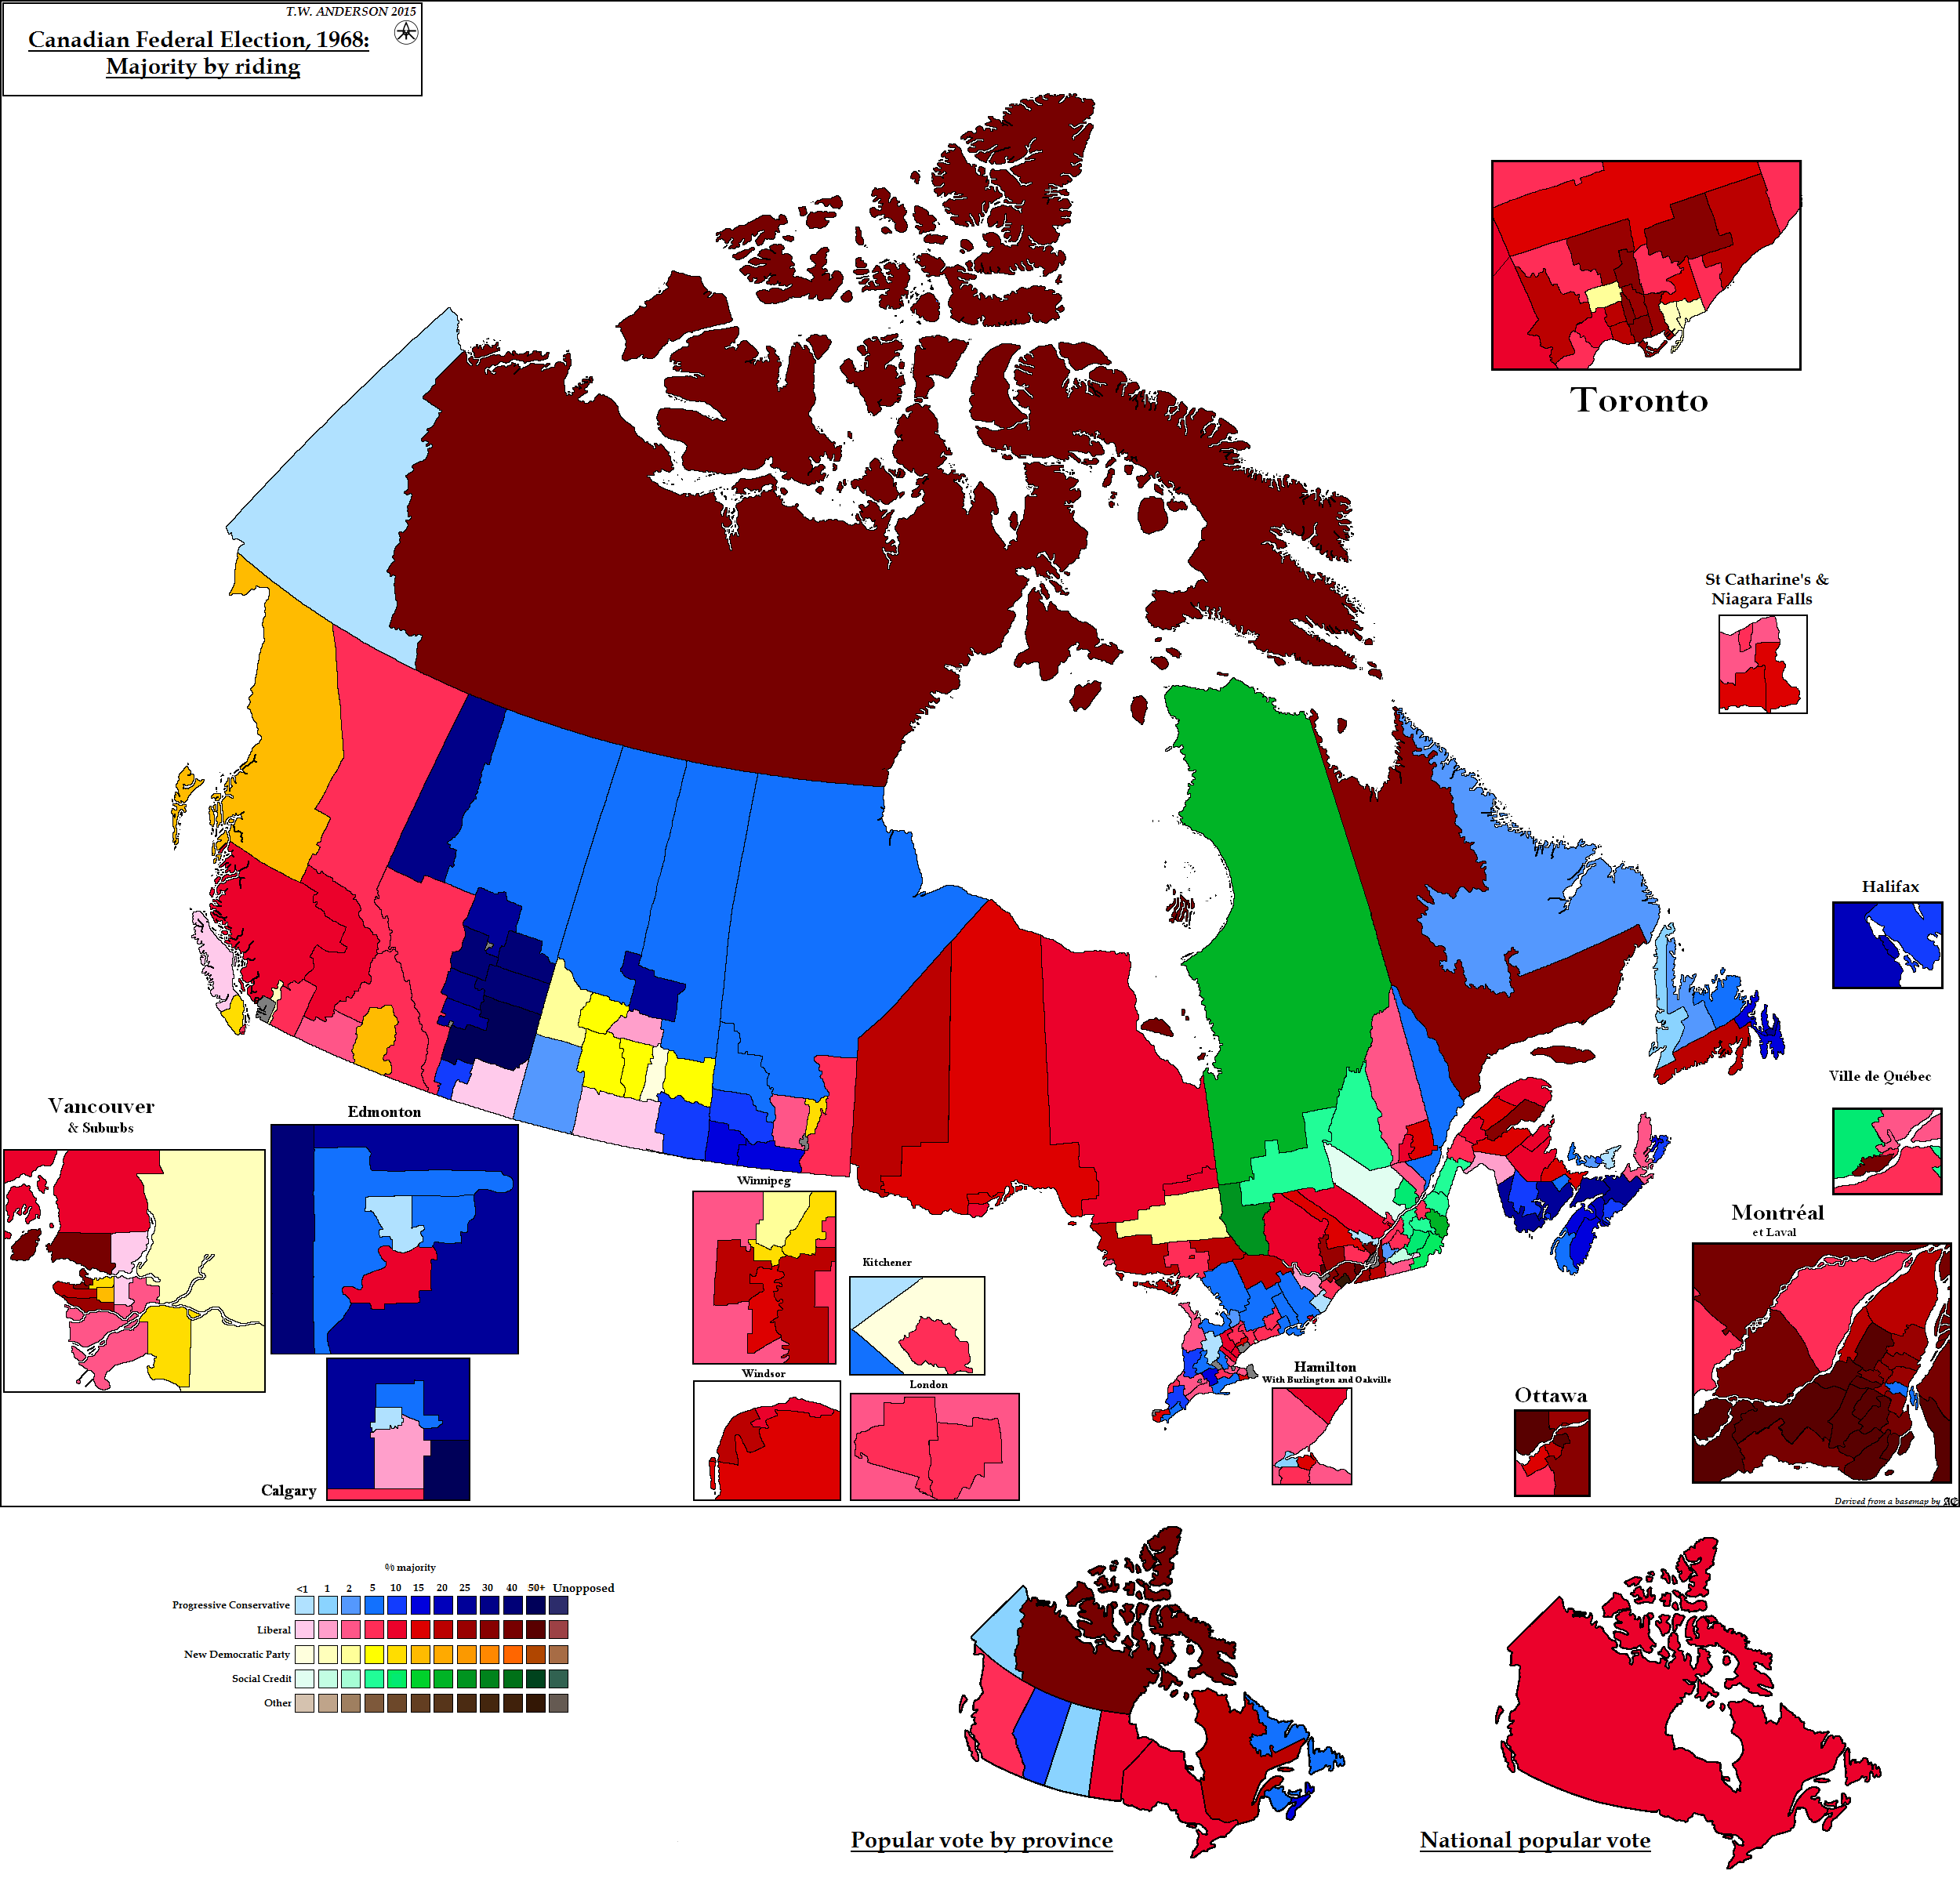 resources:canada_federal_election_maps [alternatehistory.com ... on canada politician map, canada demographics, canada politics, civil war america map, canada poverty map, canada mountain ranges map, canadian electoral map, canada history, canada home, idaho electoral map, canada flight map, us canadian map, canada population density map, canada elevation map, canada political party map, canada and united states map, archives of canada in map, canada voting map, canada government map, prince edward island map,